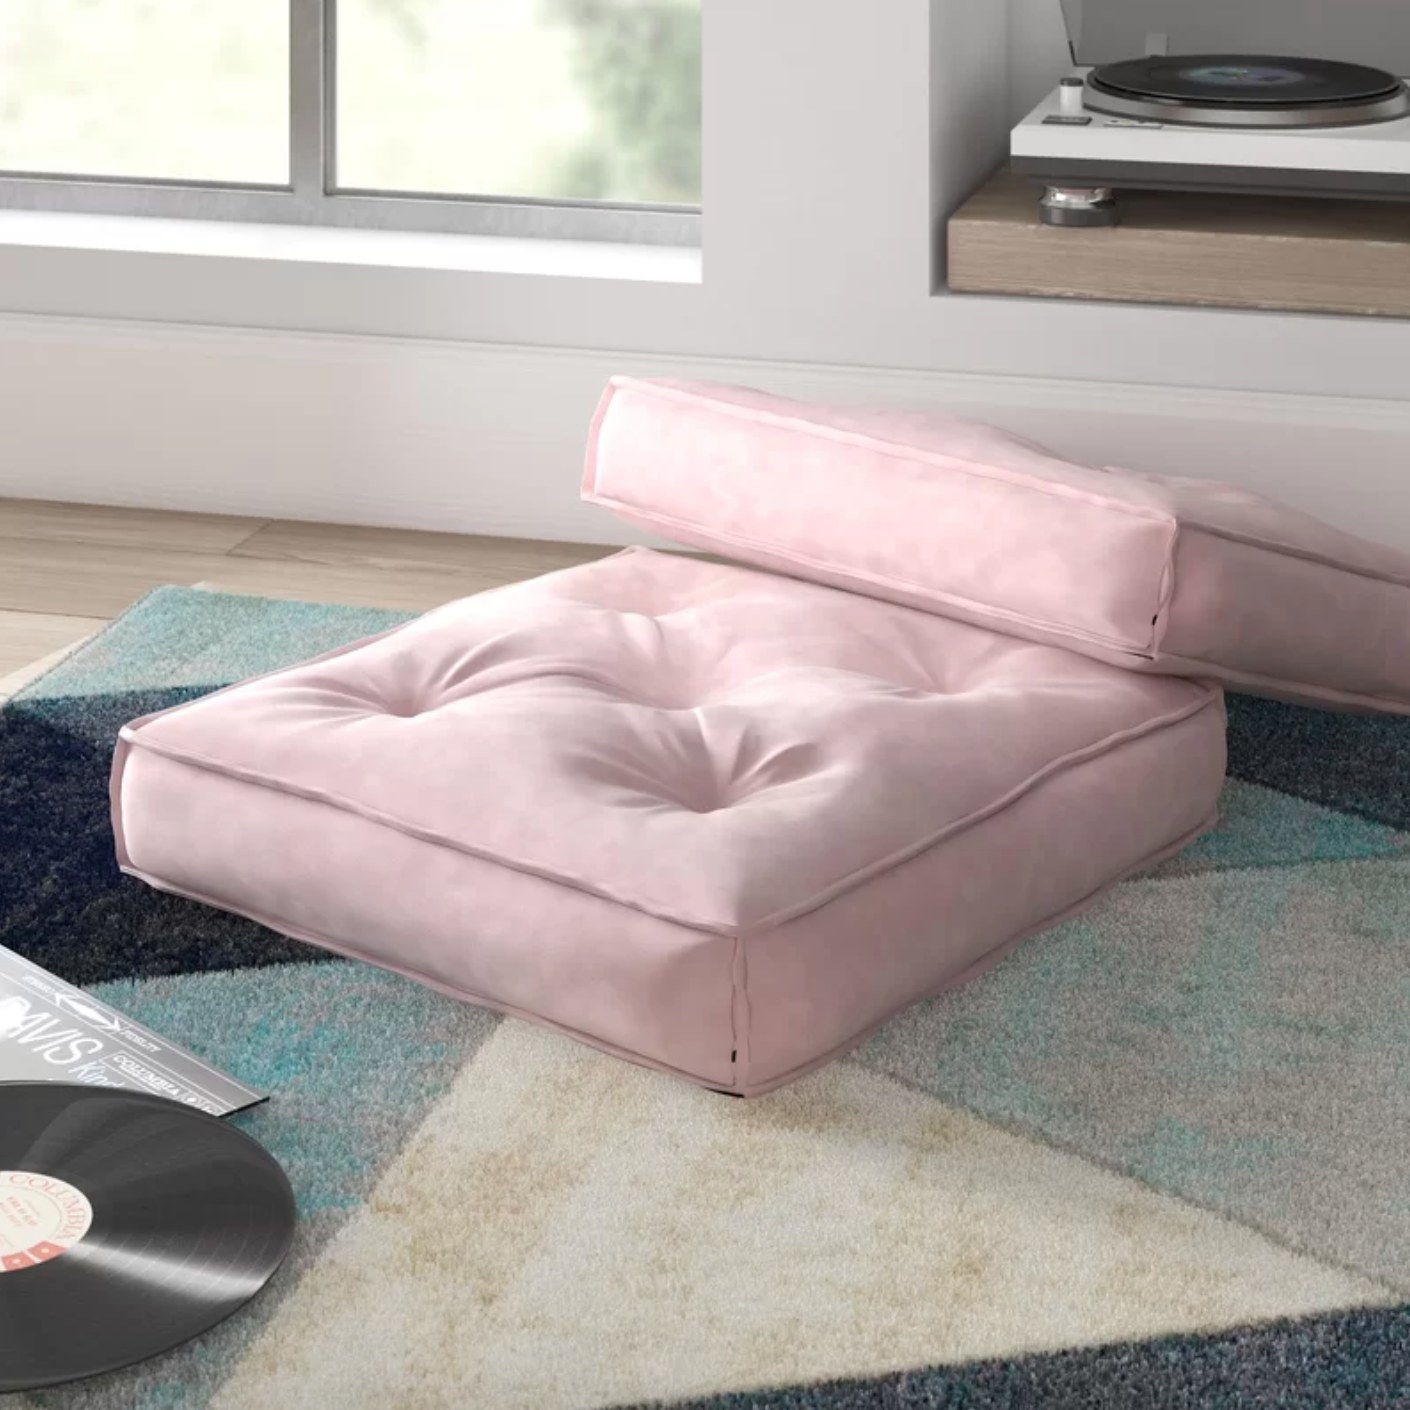 The square pillow cover and insert in blush